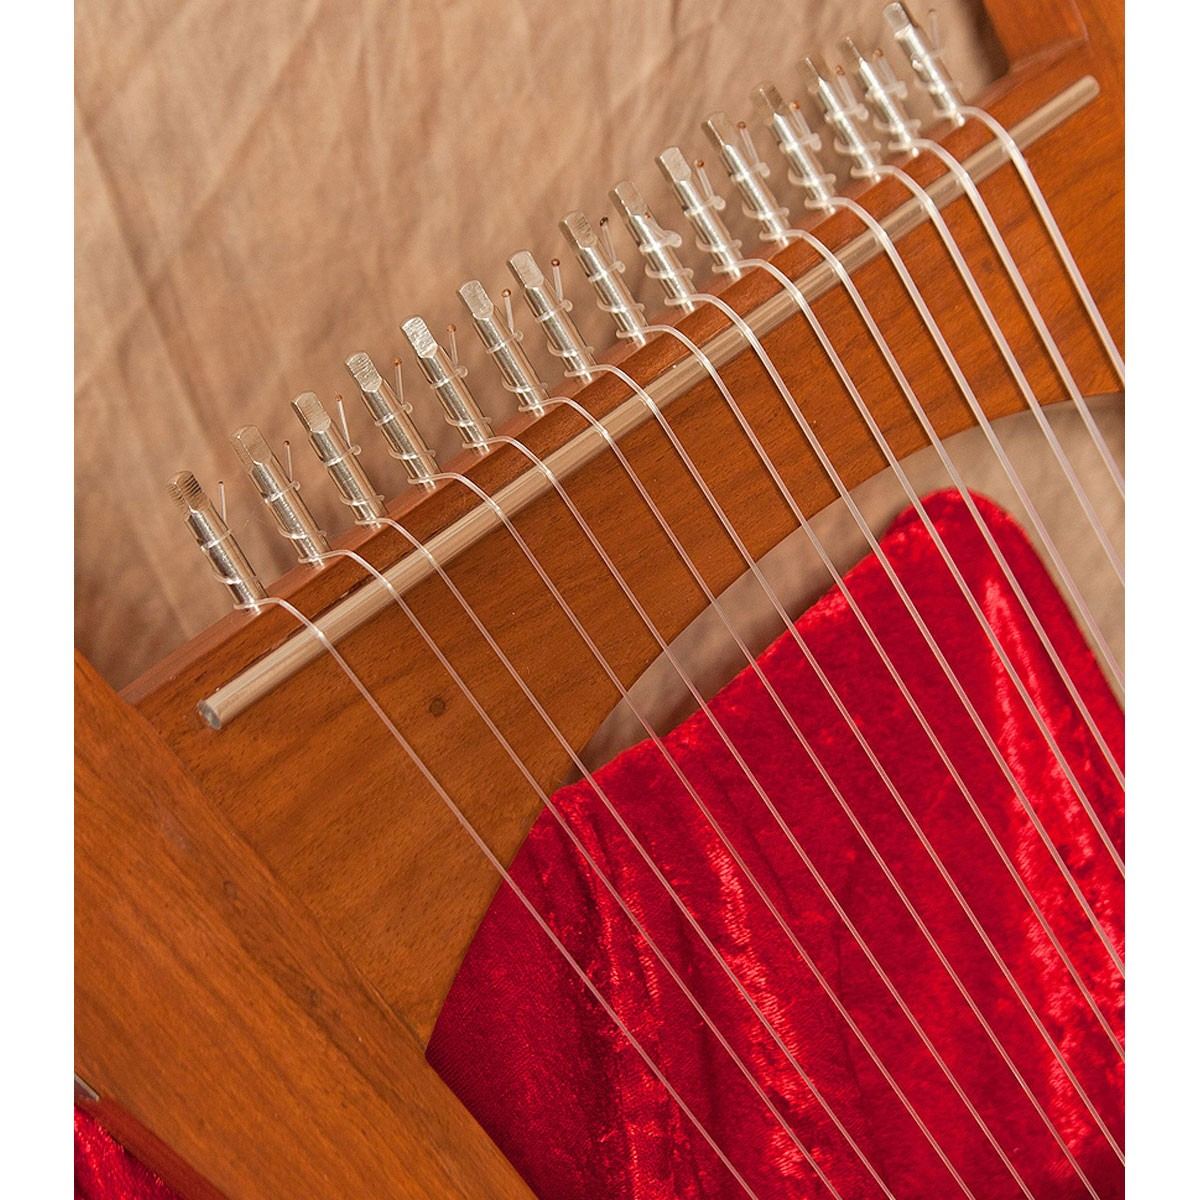 Nevel Harp Accessories